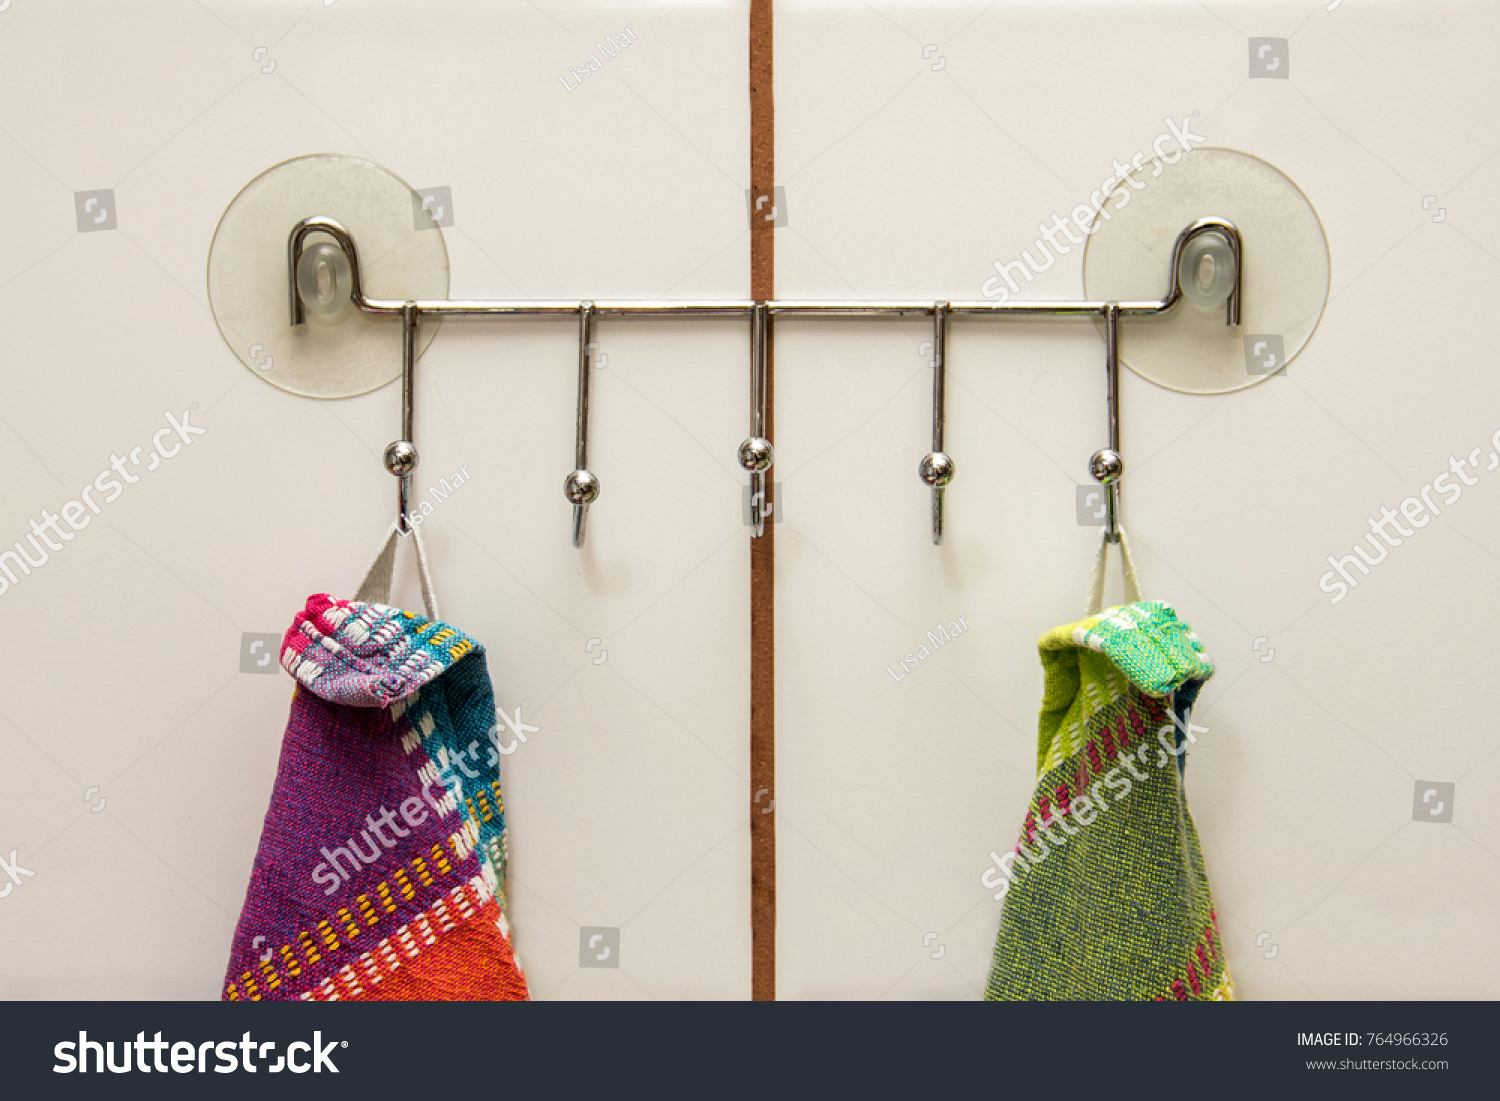 Two Colourful Towels Hanging On A Hooks With Suction Cups In A Kitchen